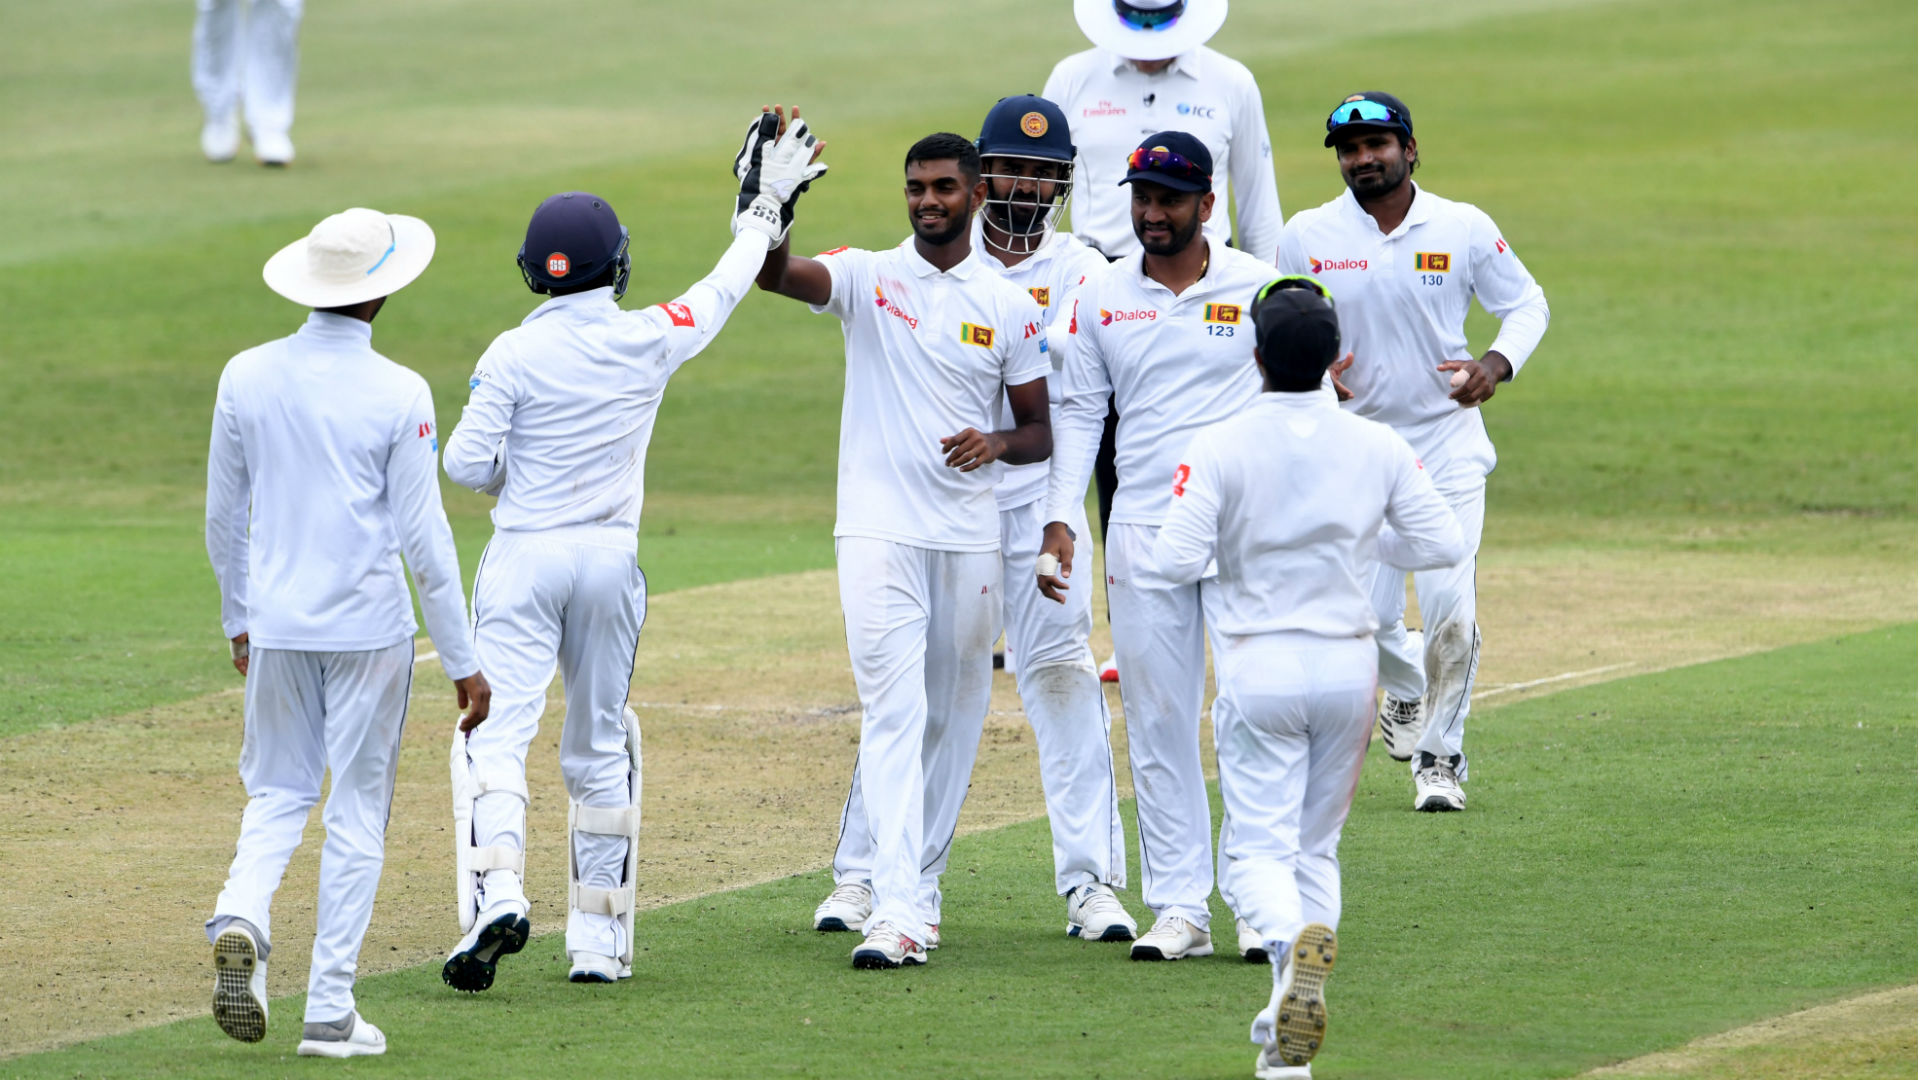 Sri Lanka on top despite De Kock resistance in Durban